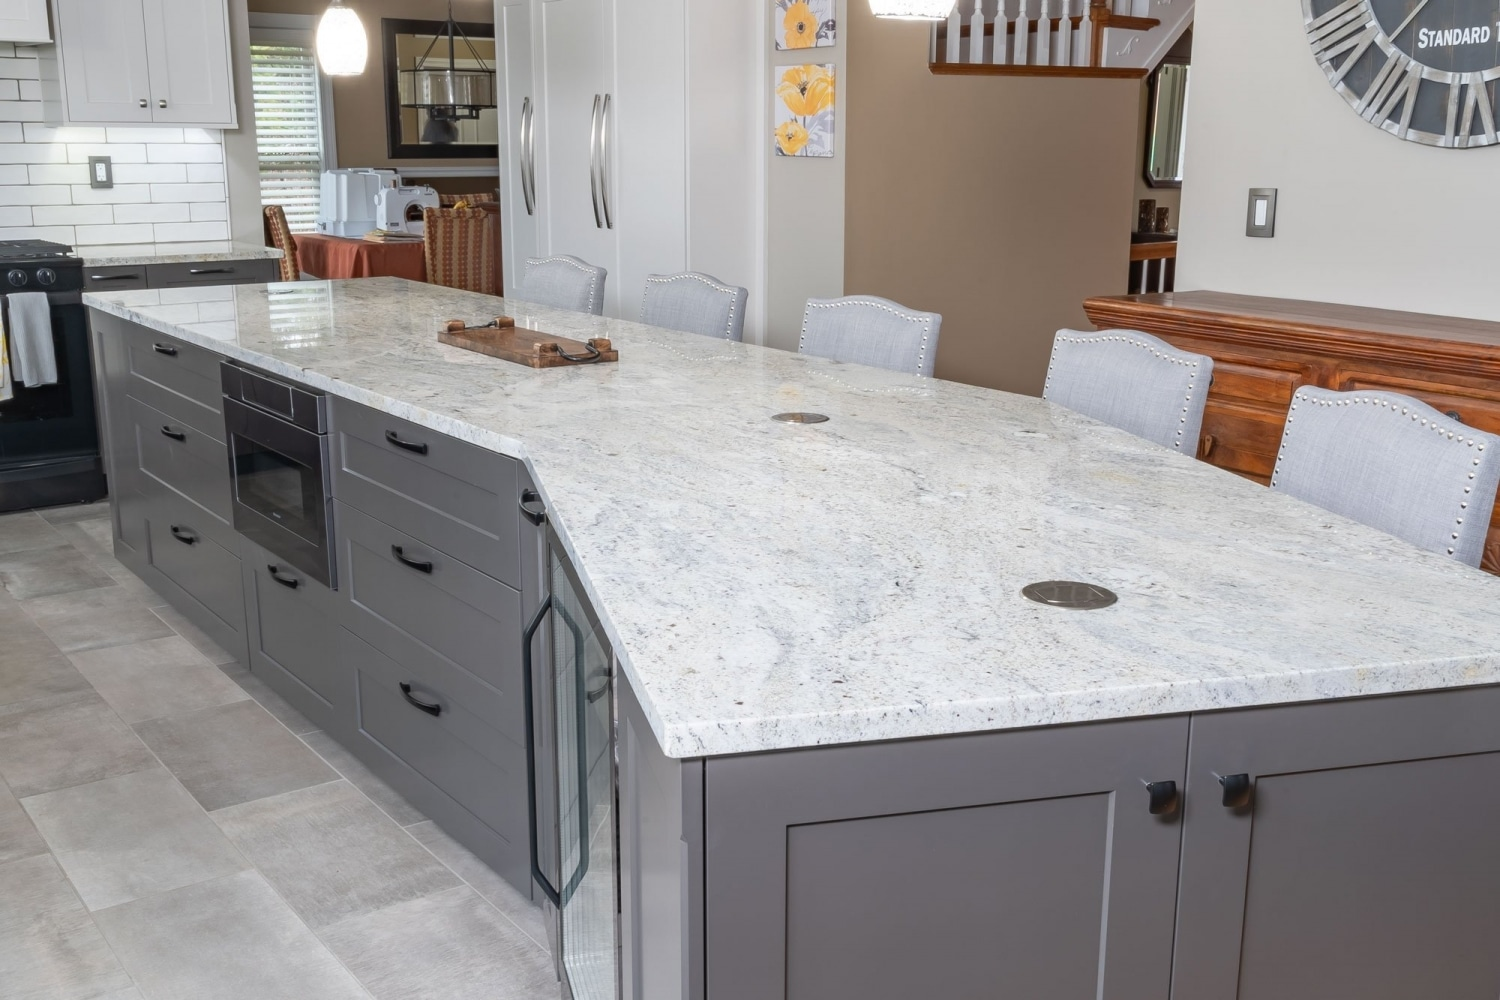 empire-gmq-marble-countertops-custom-kitchens-custom-cabinet-doors-6